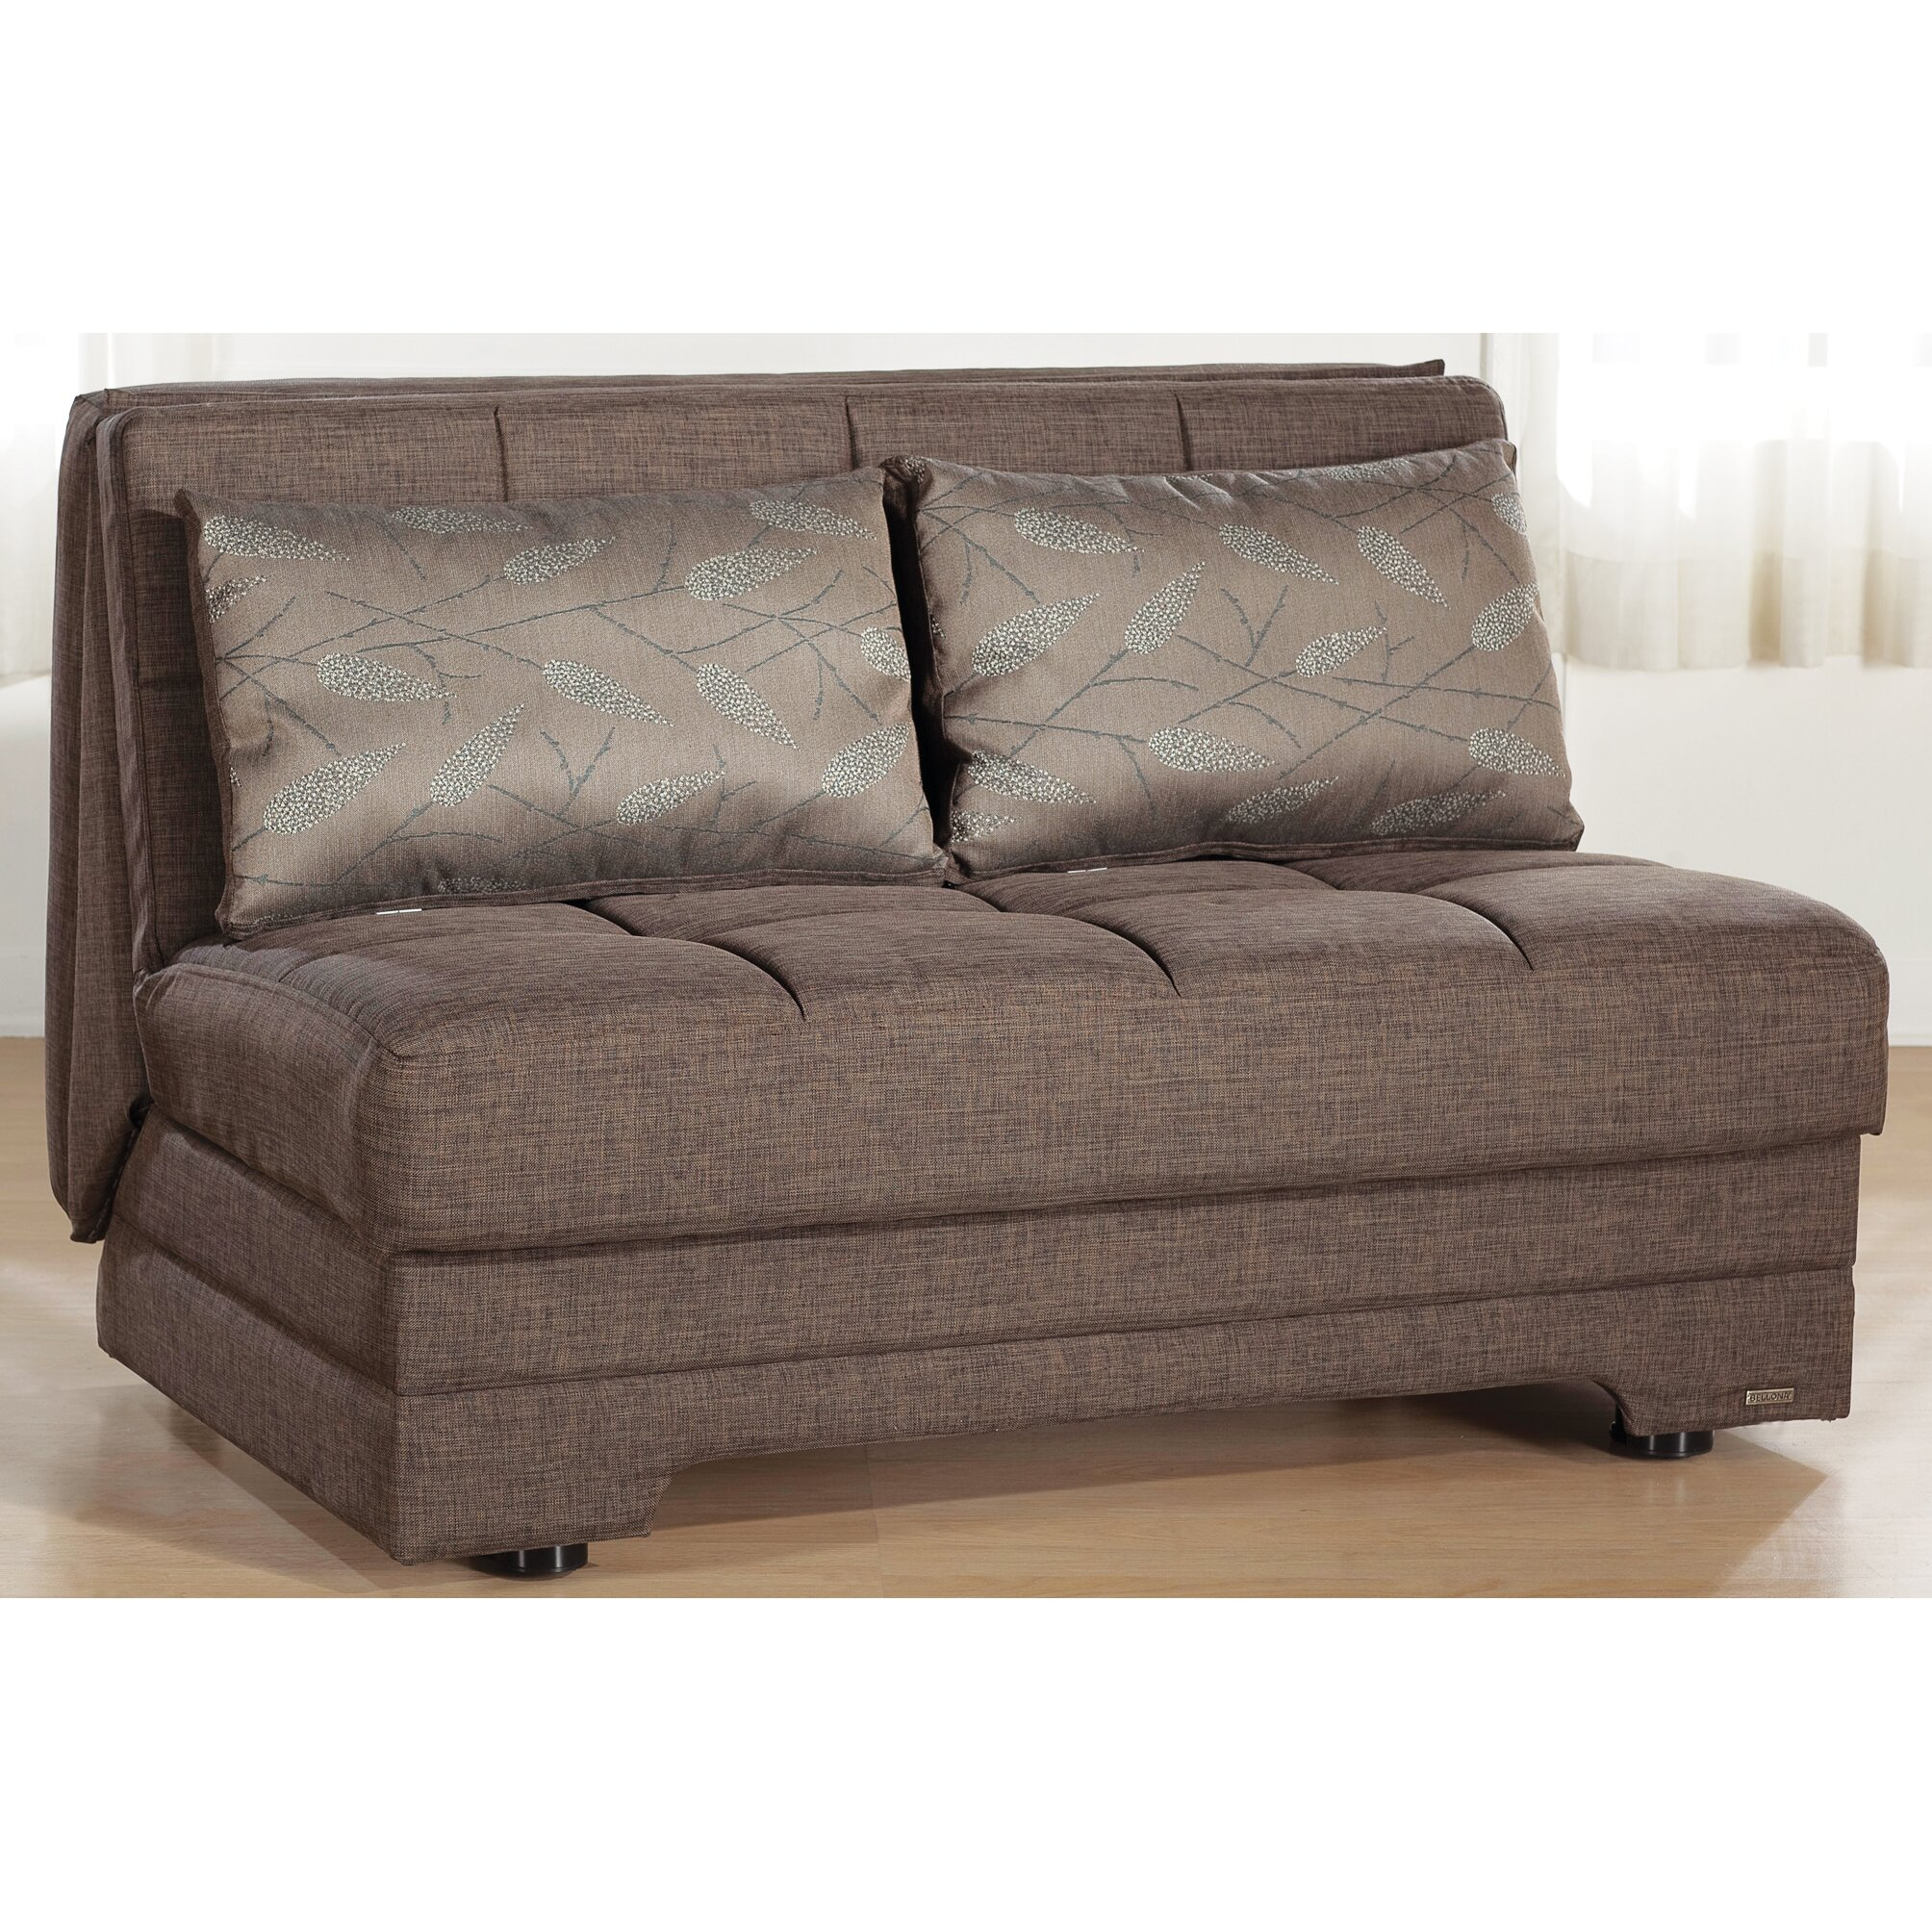 International Furniture Kitchener Istikbal Twist Sleeper Sofa Reviews Wayfair